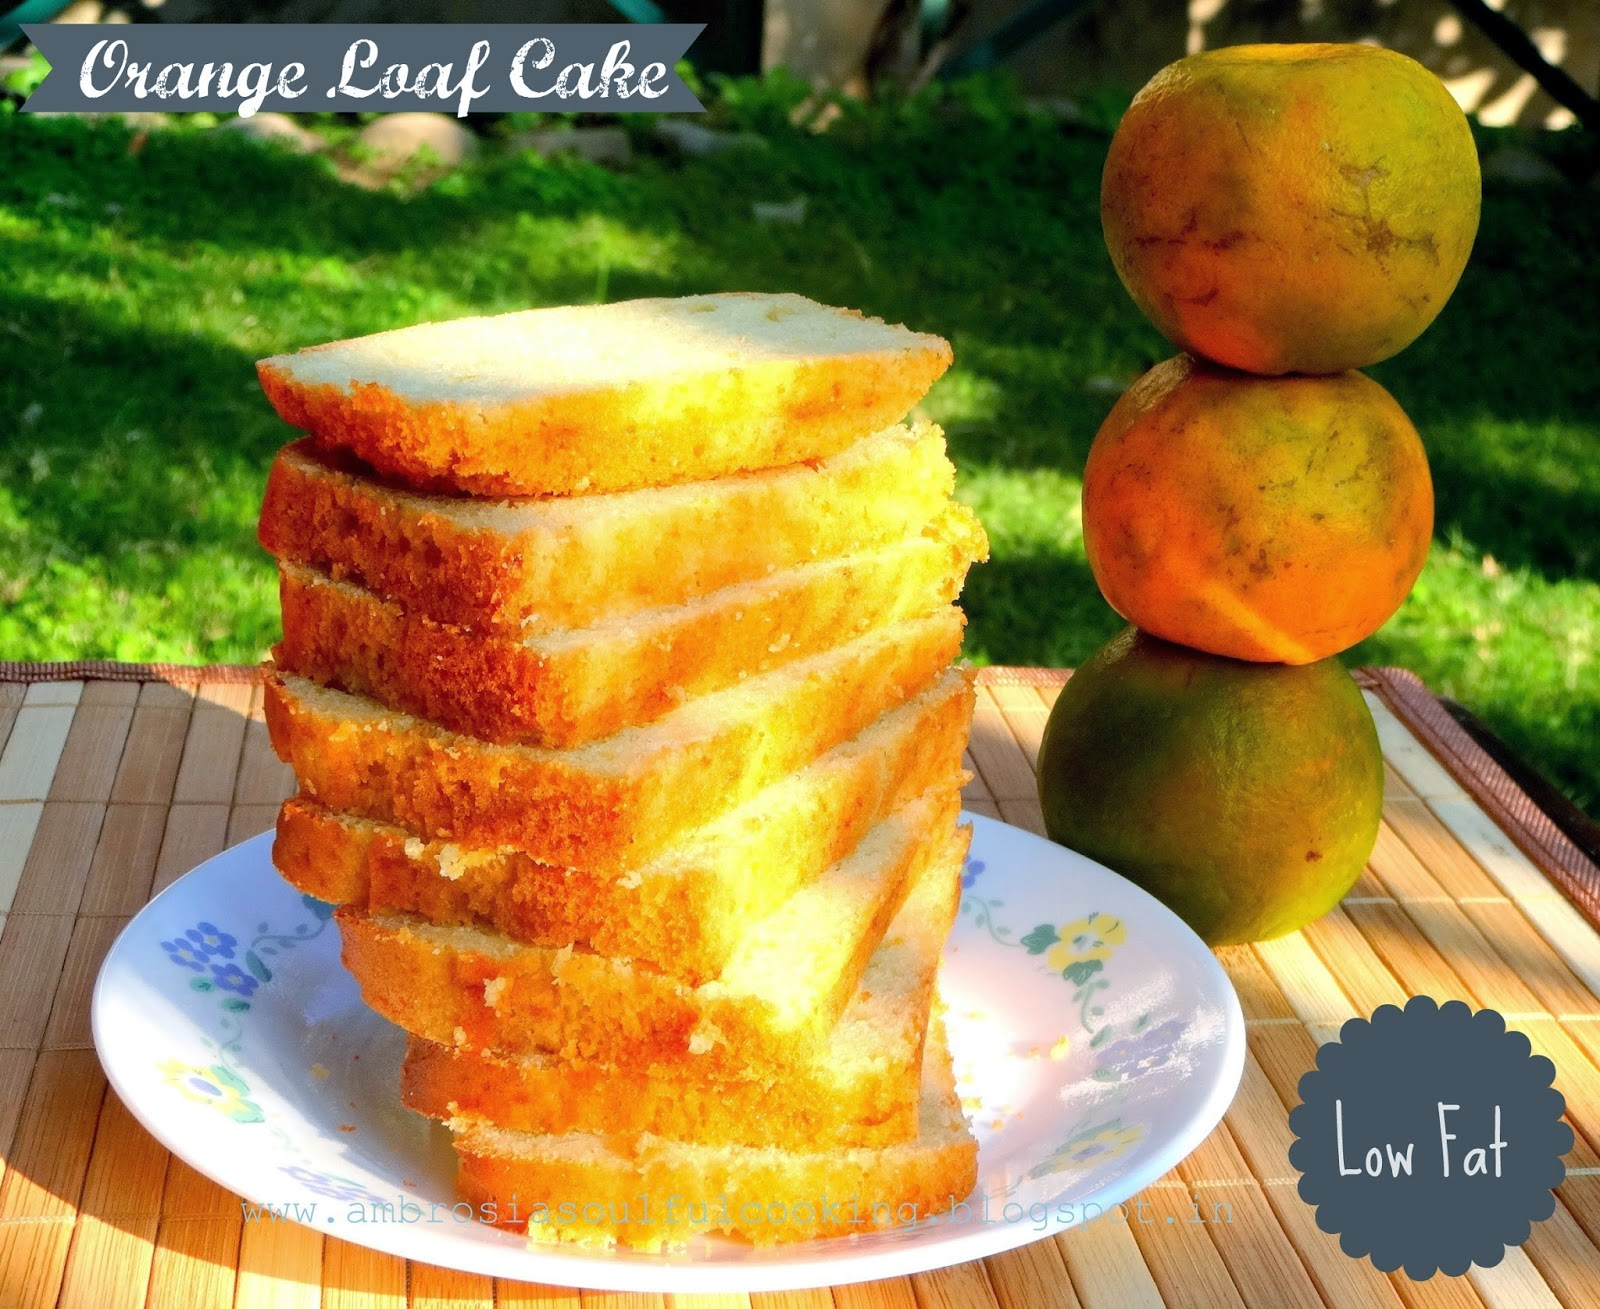 Low Fat Orange Loaf Cake